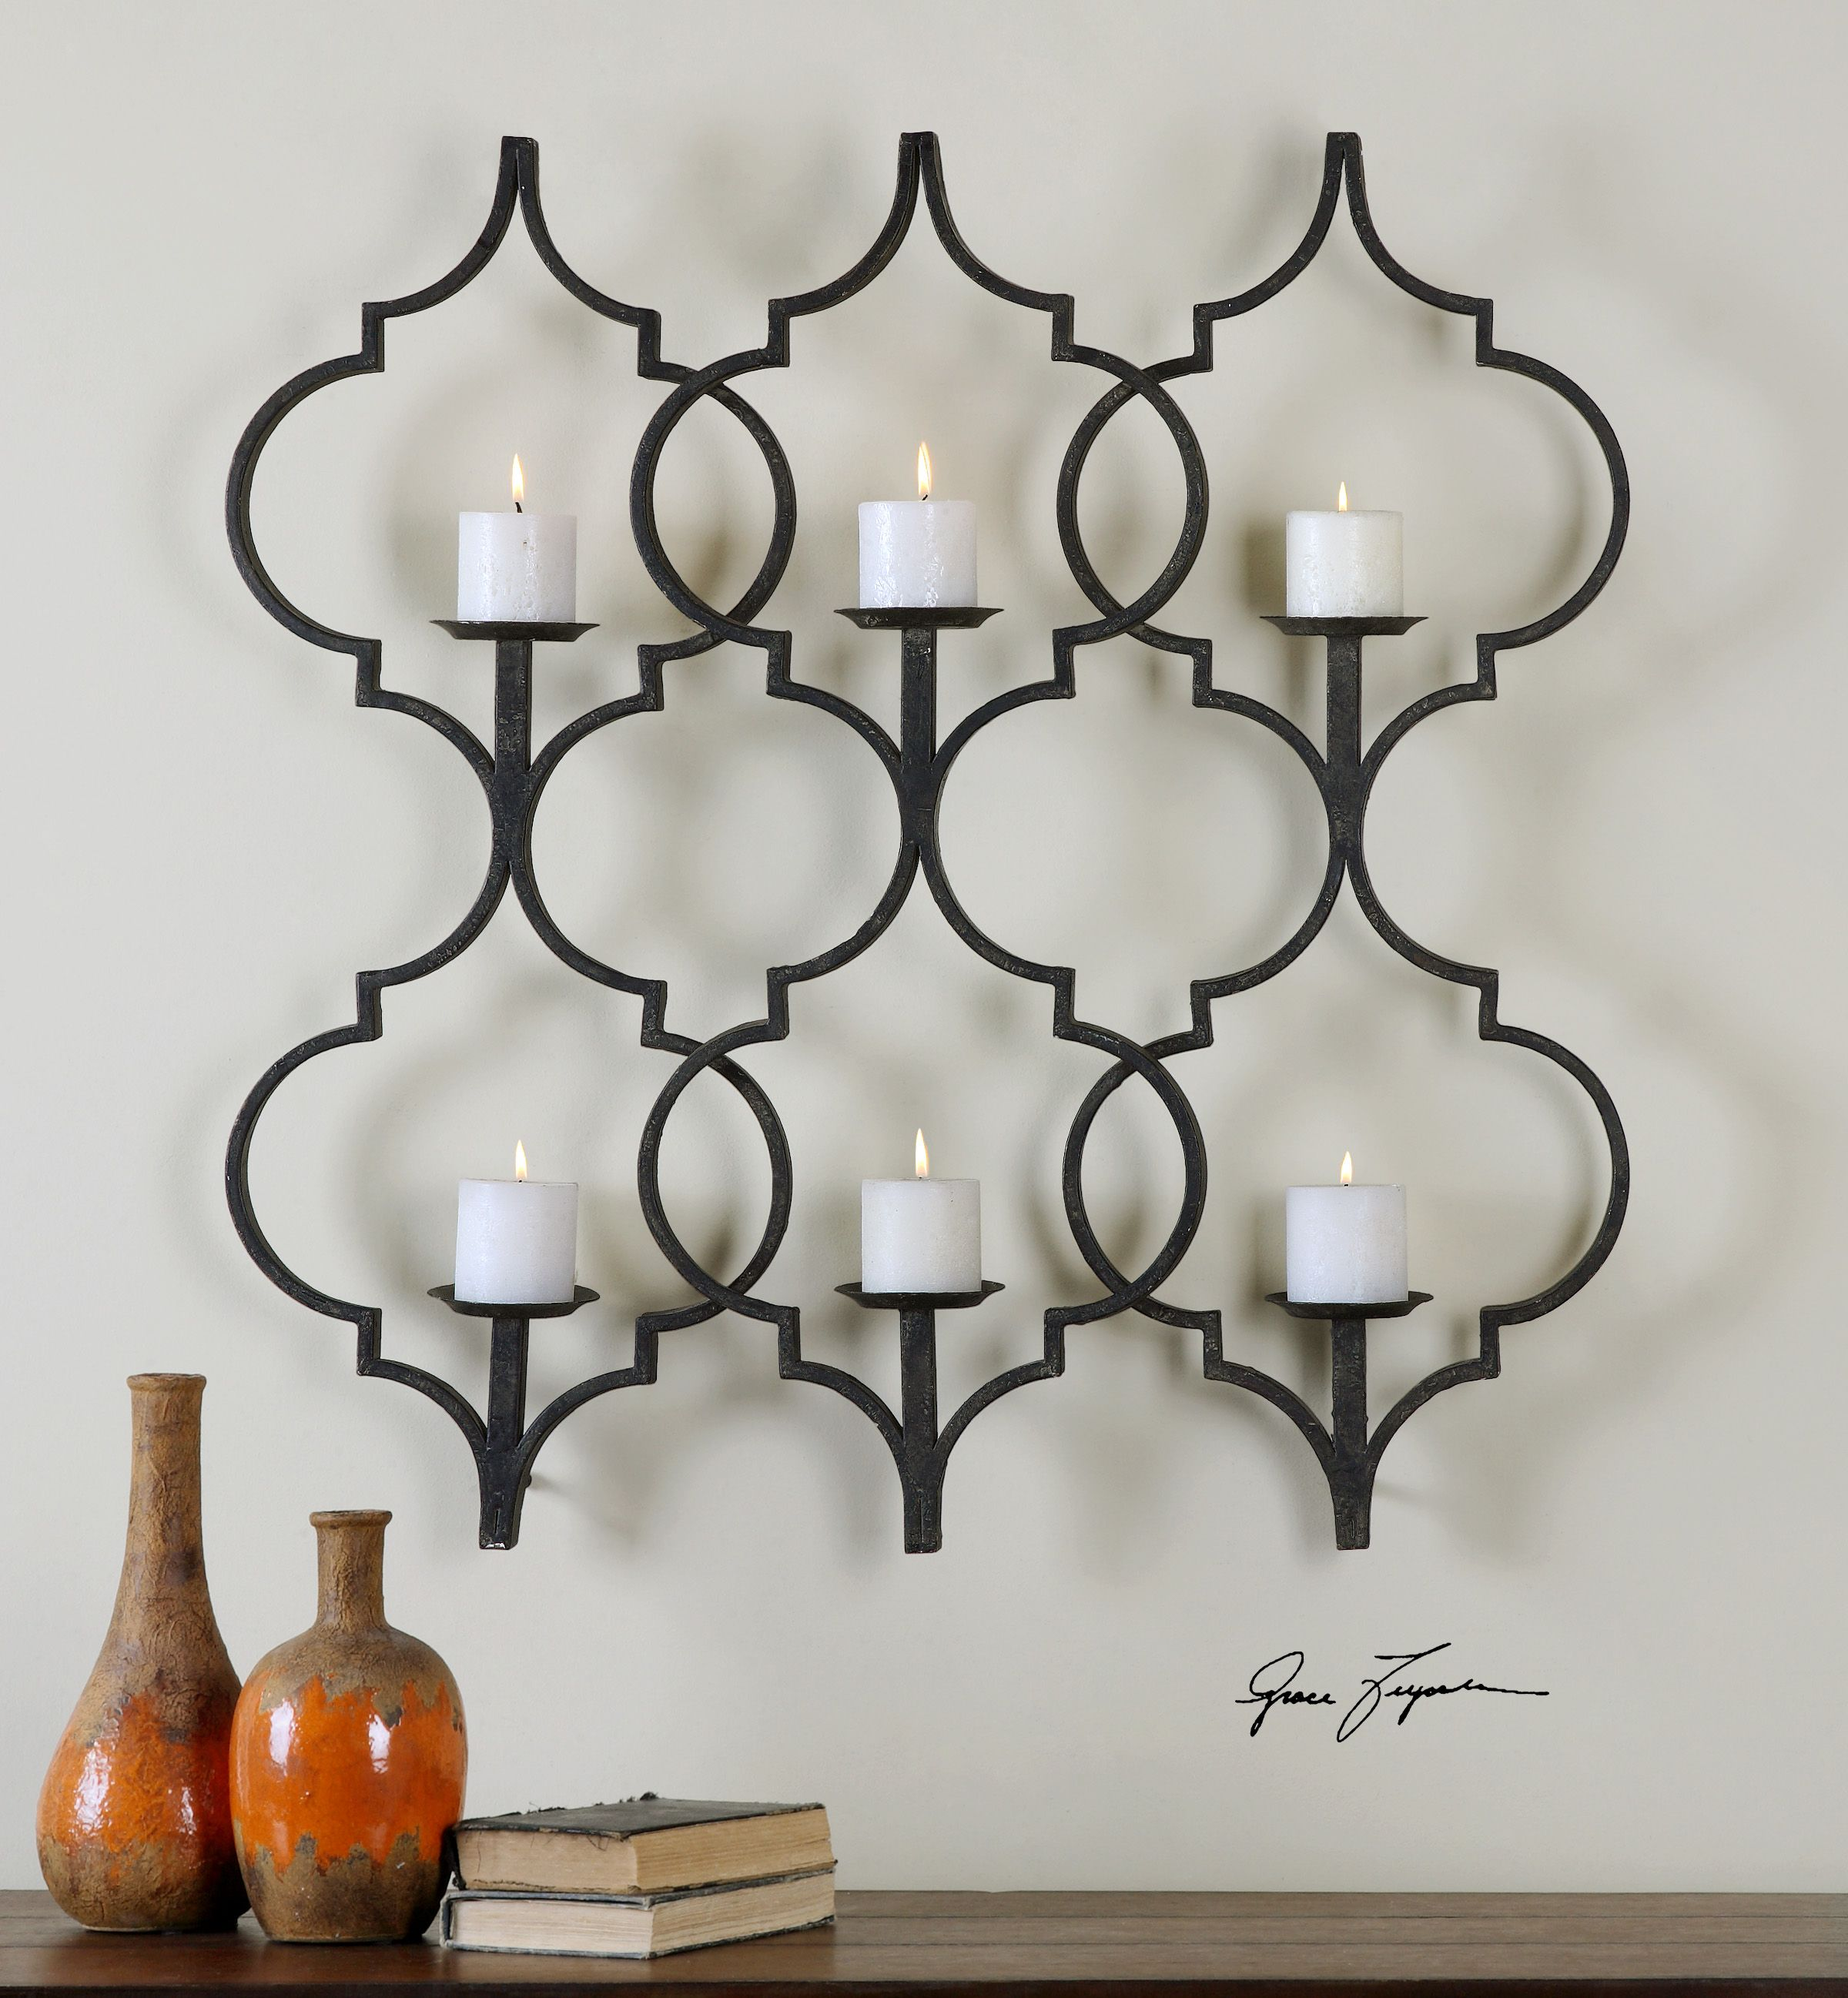 clocks sizing with sconces decorating regard to wall sconce ideas x decorative uttermost ronan large